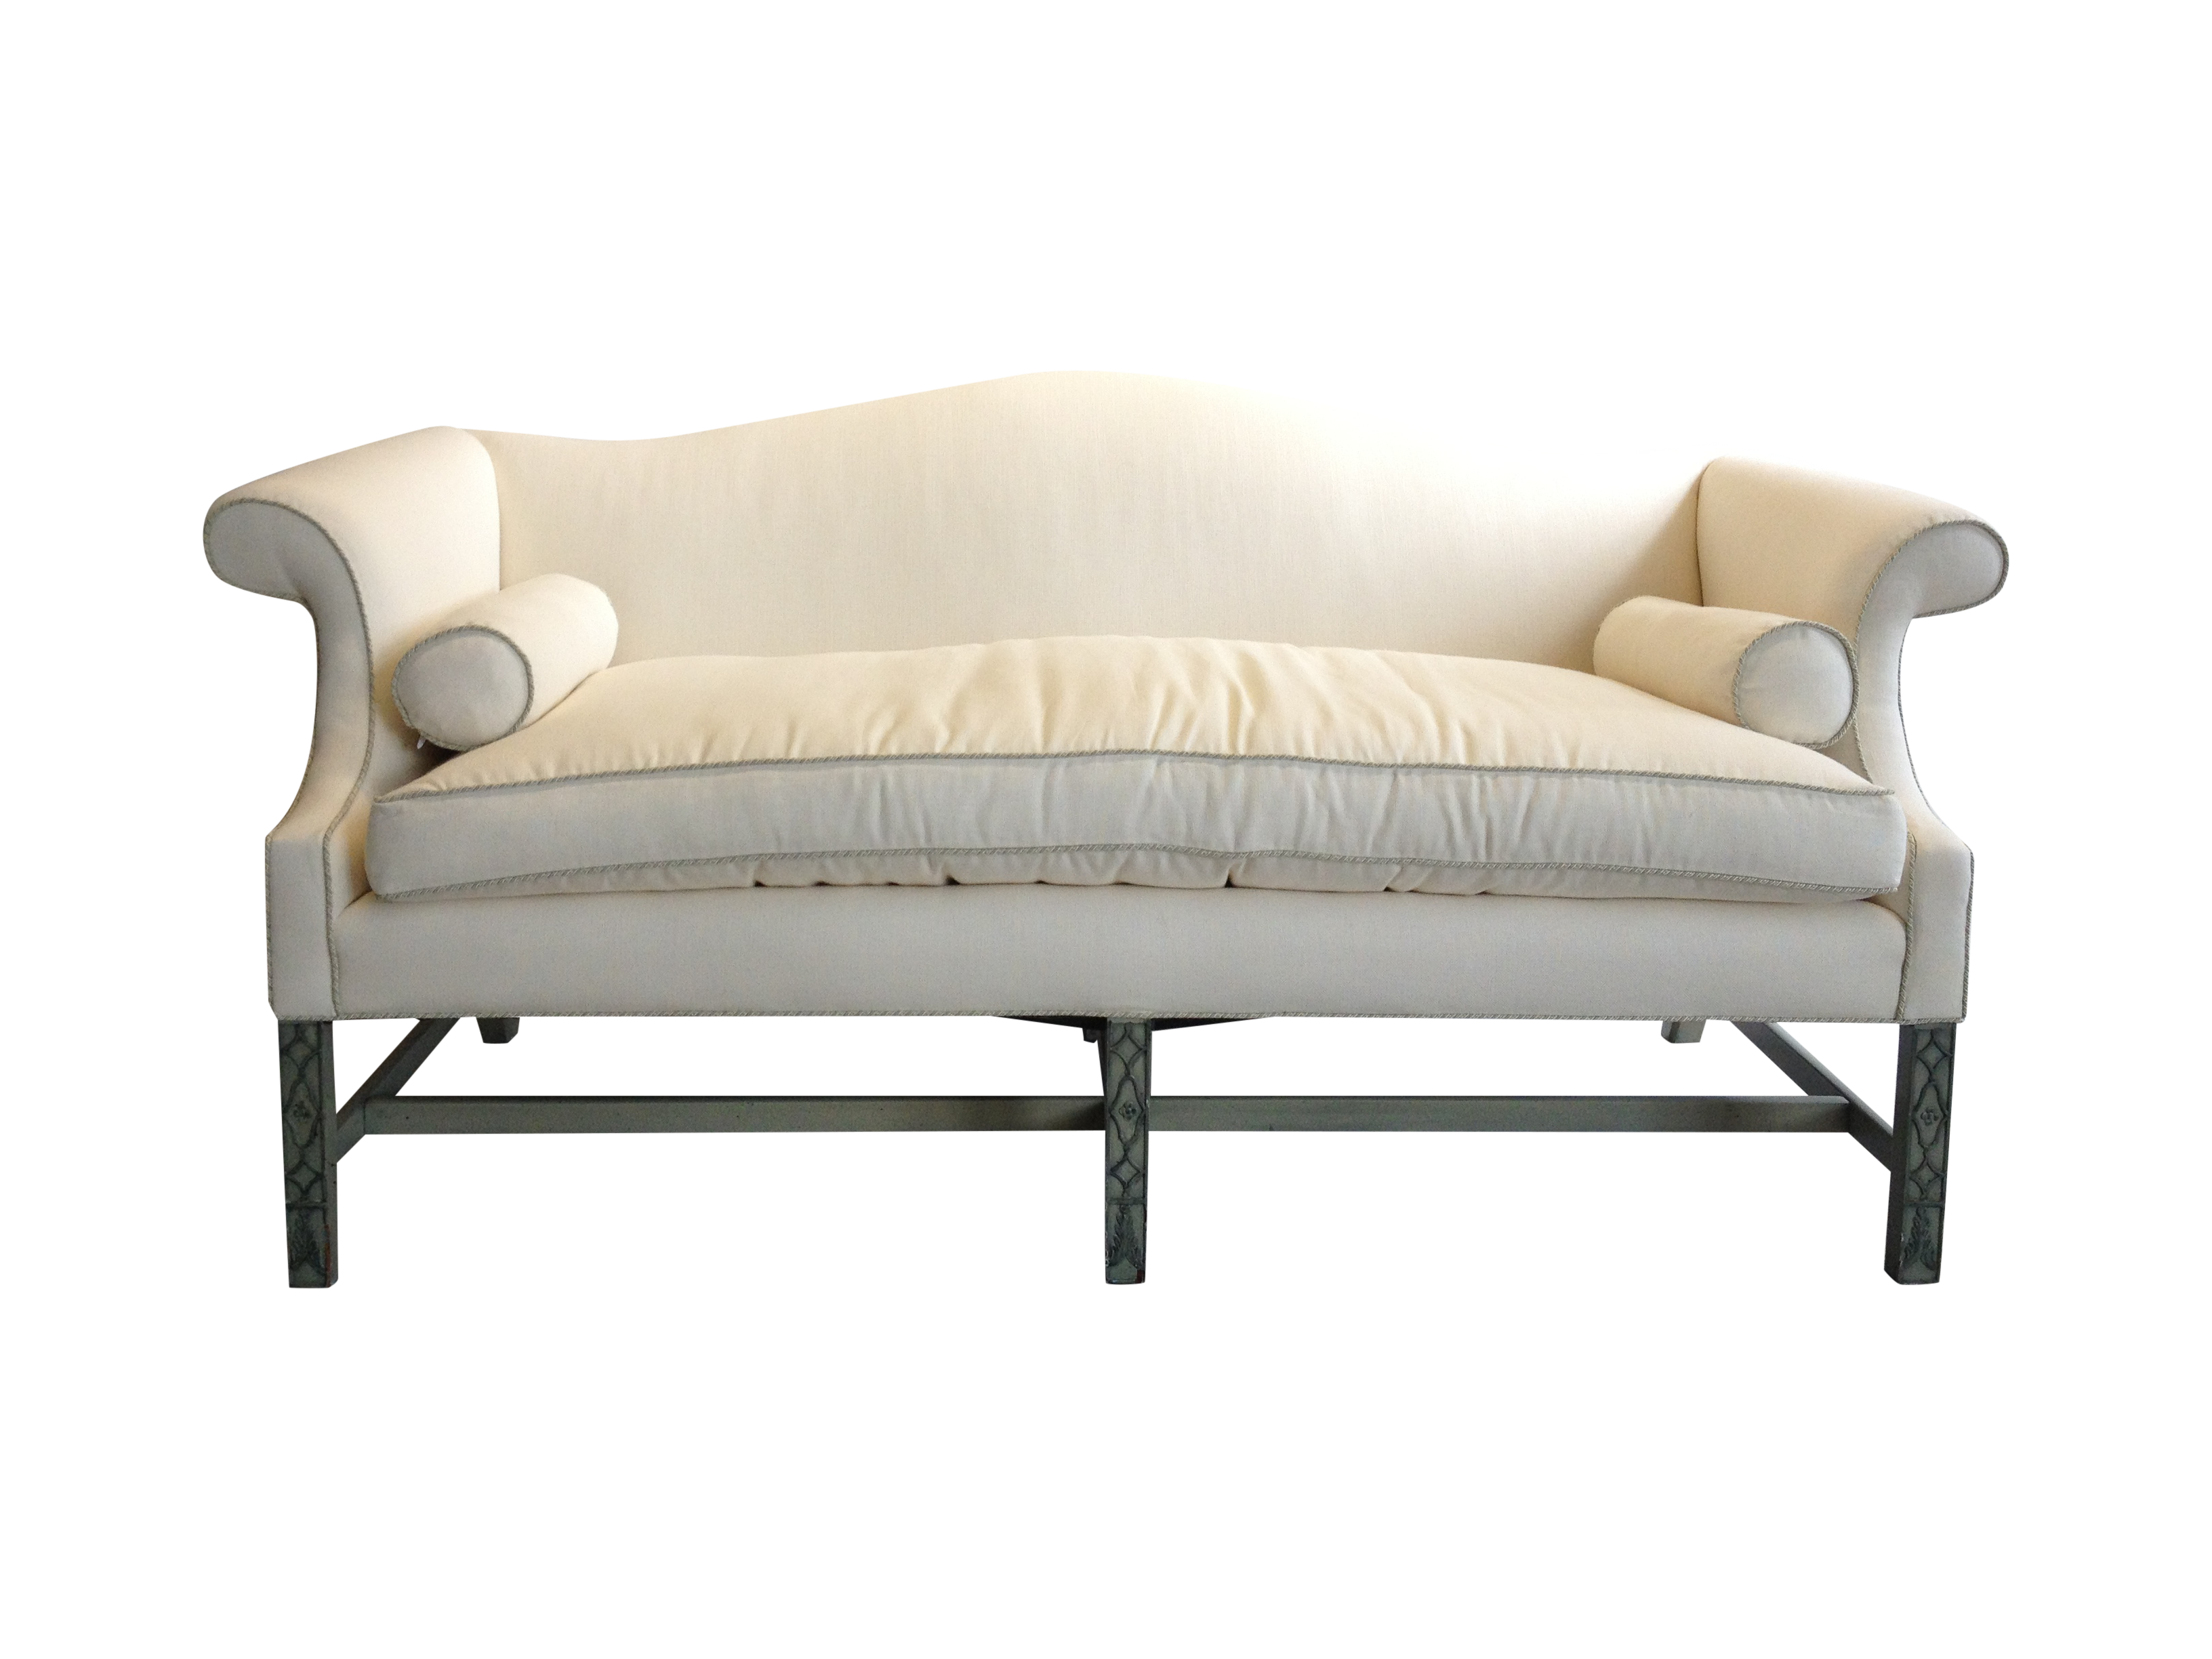 Chippendale sofaschippendale sofas - Image Of Kittinger Chippendale Sofa With Fretwork Legs